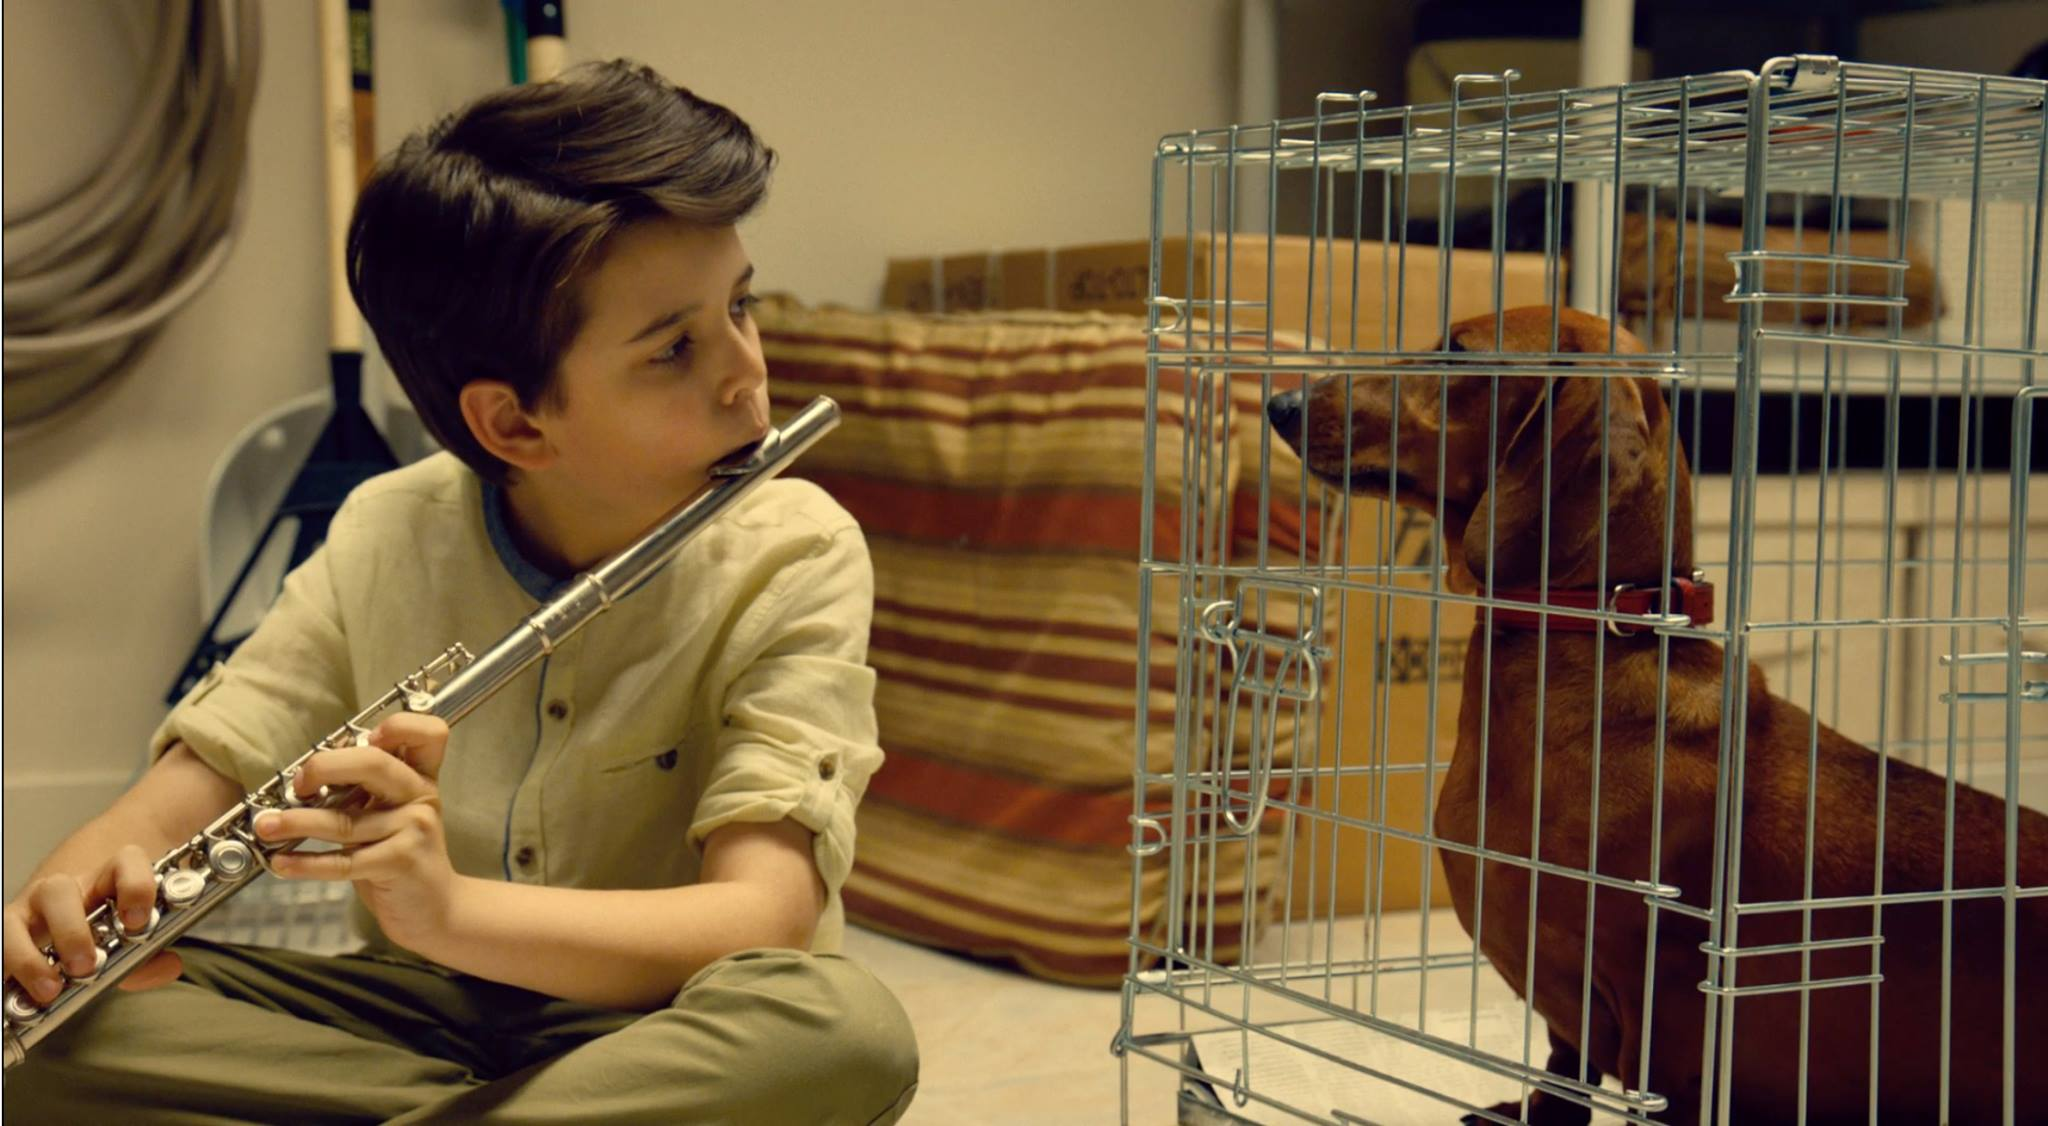 """Wiener-Dog"" opens in select cities July 1. (Photo courtesy of IFC Films, used with permission)"